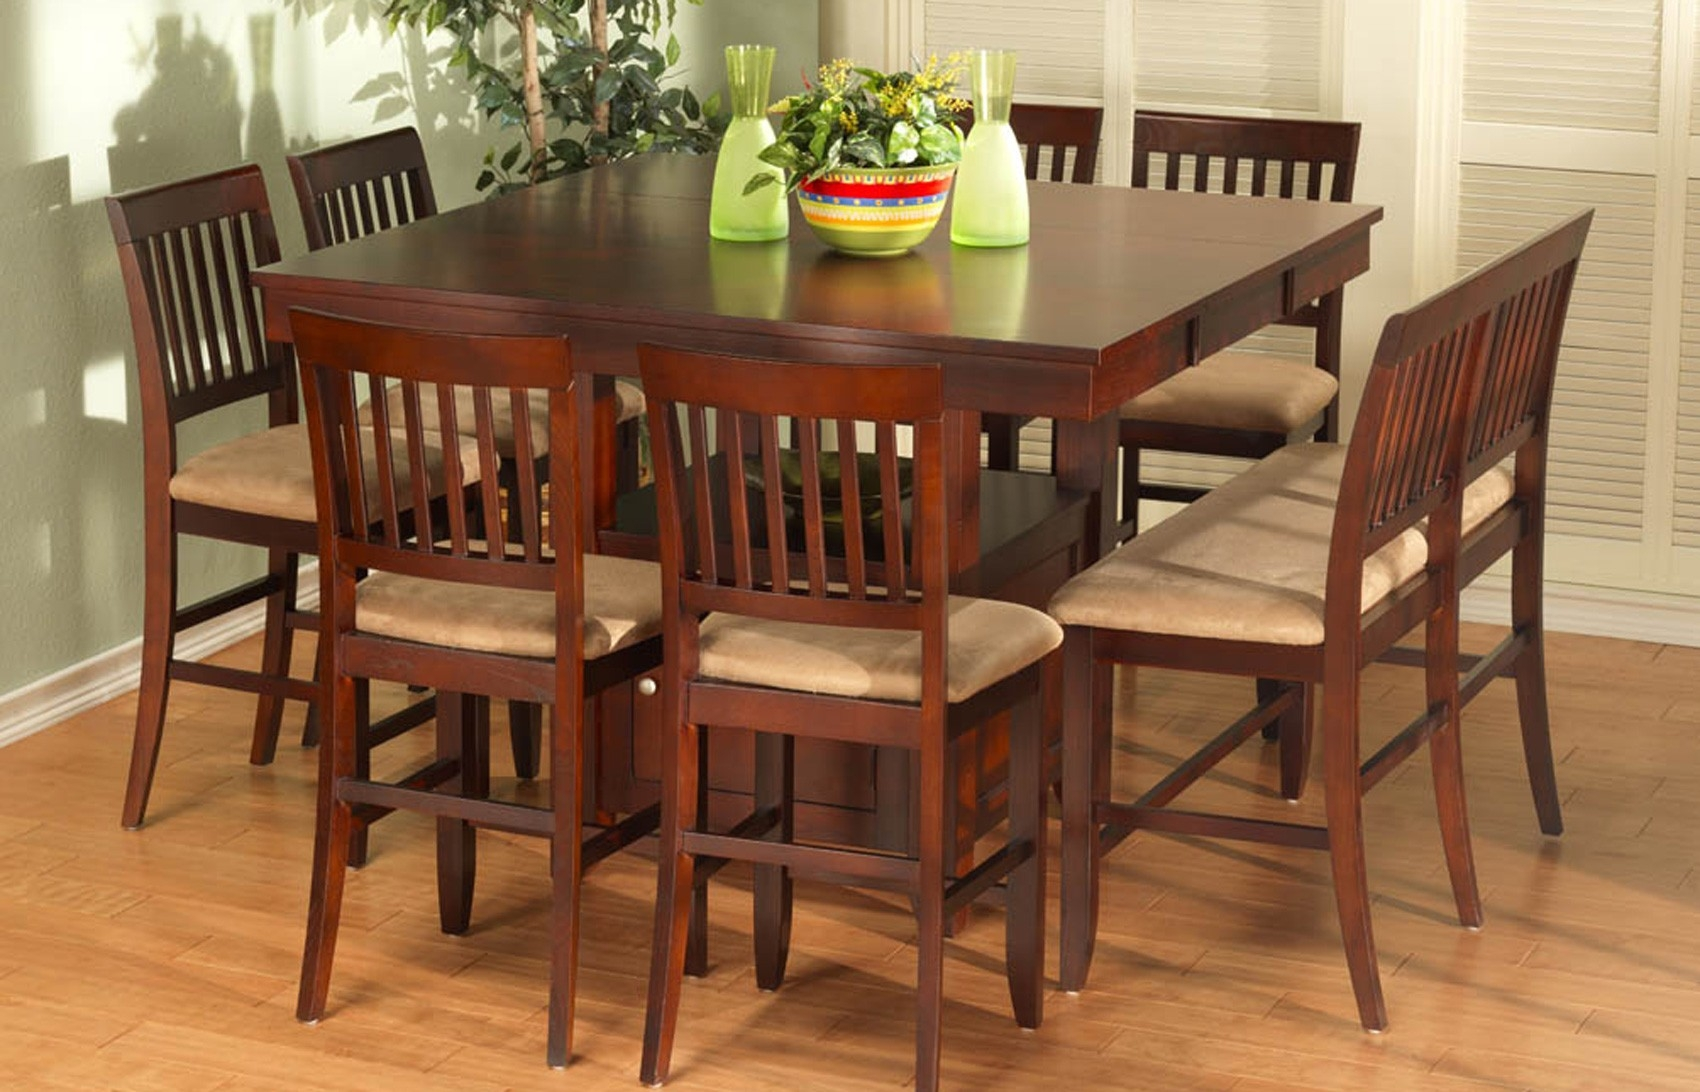 Engaging High Top Table And Chairs Set 9 Kitchen With Bench Tables ...